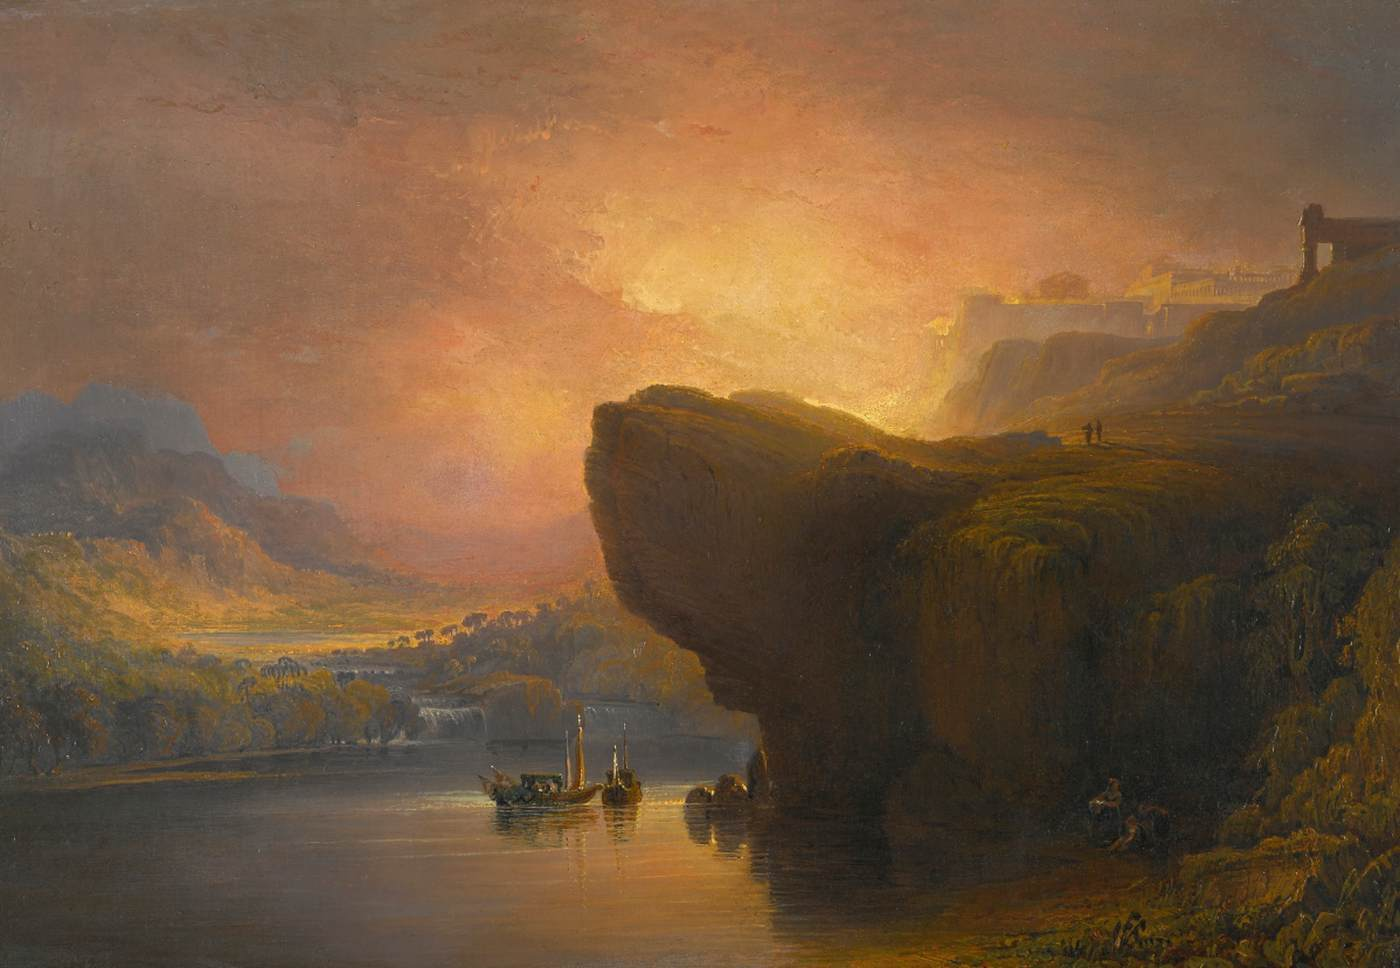 The City of God and the Waters of Life by John Martin, 1850